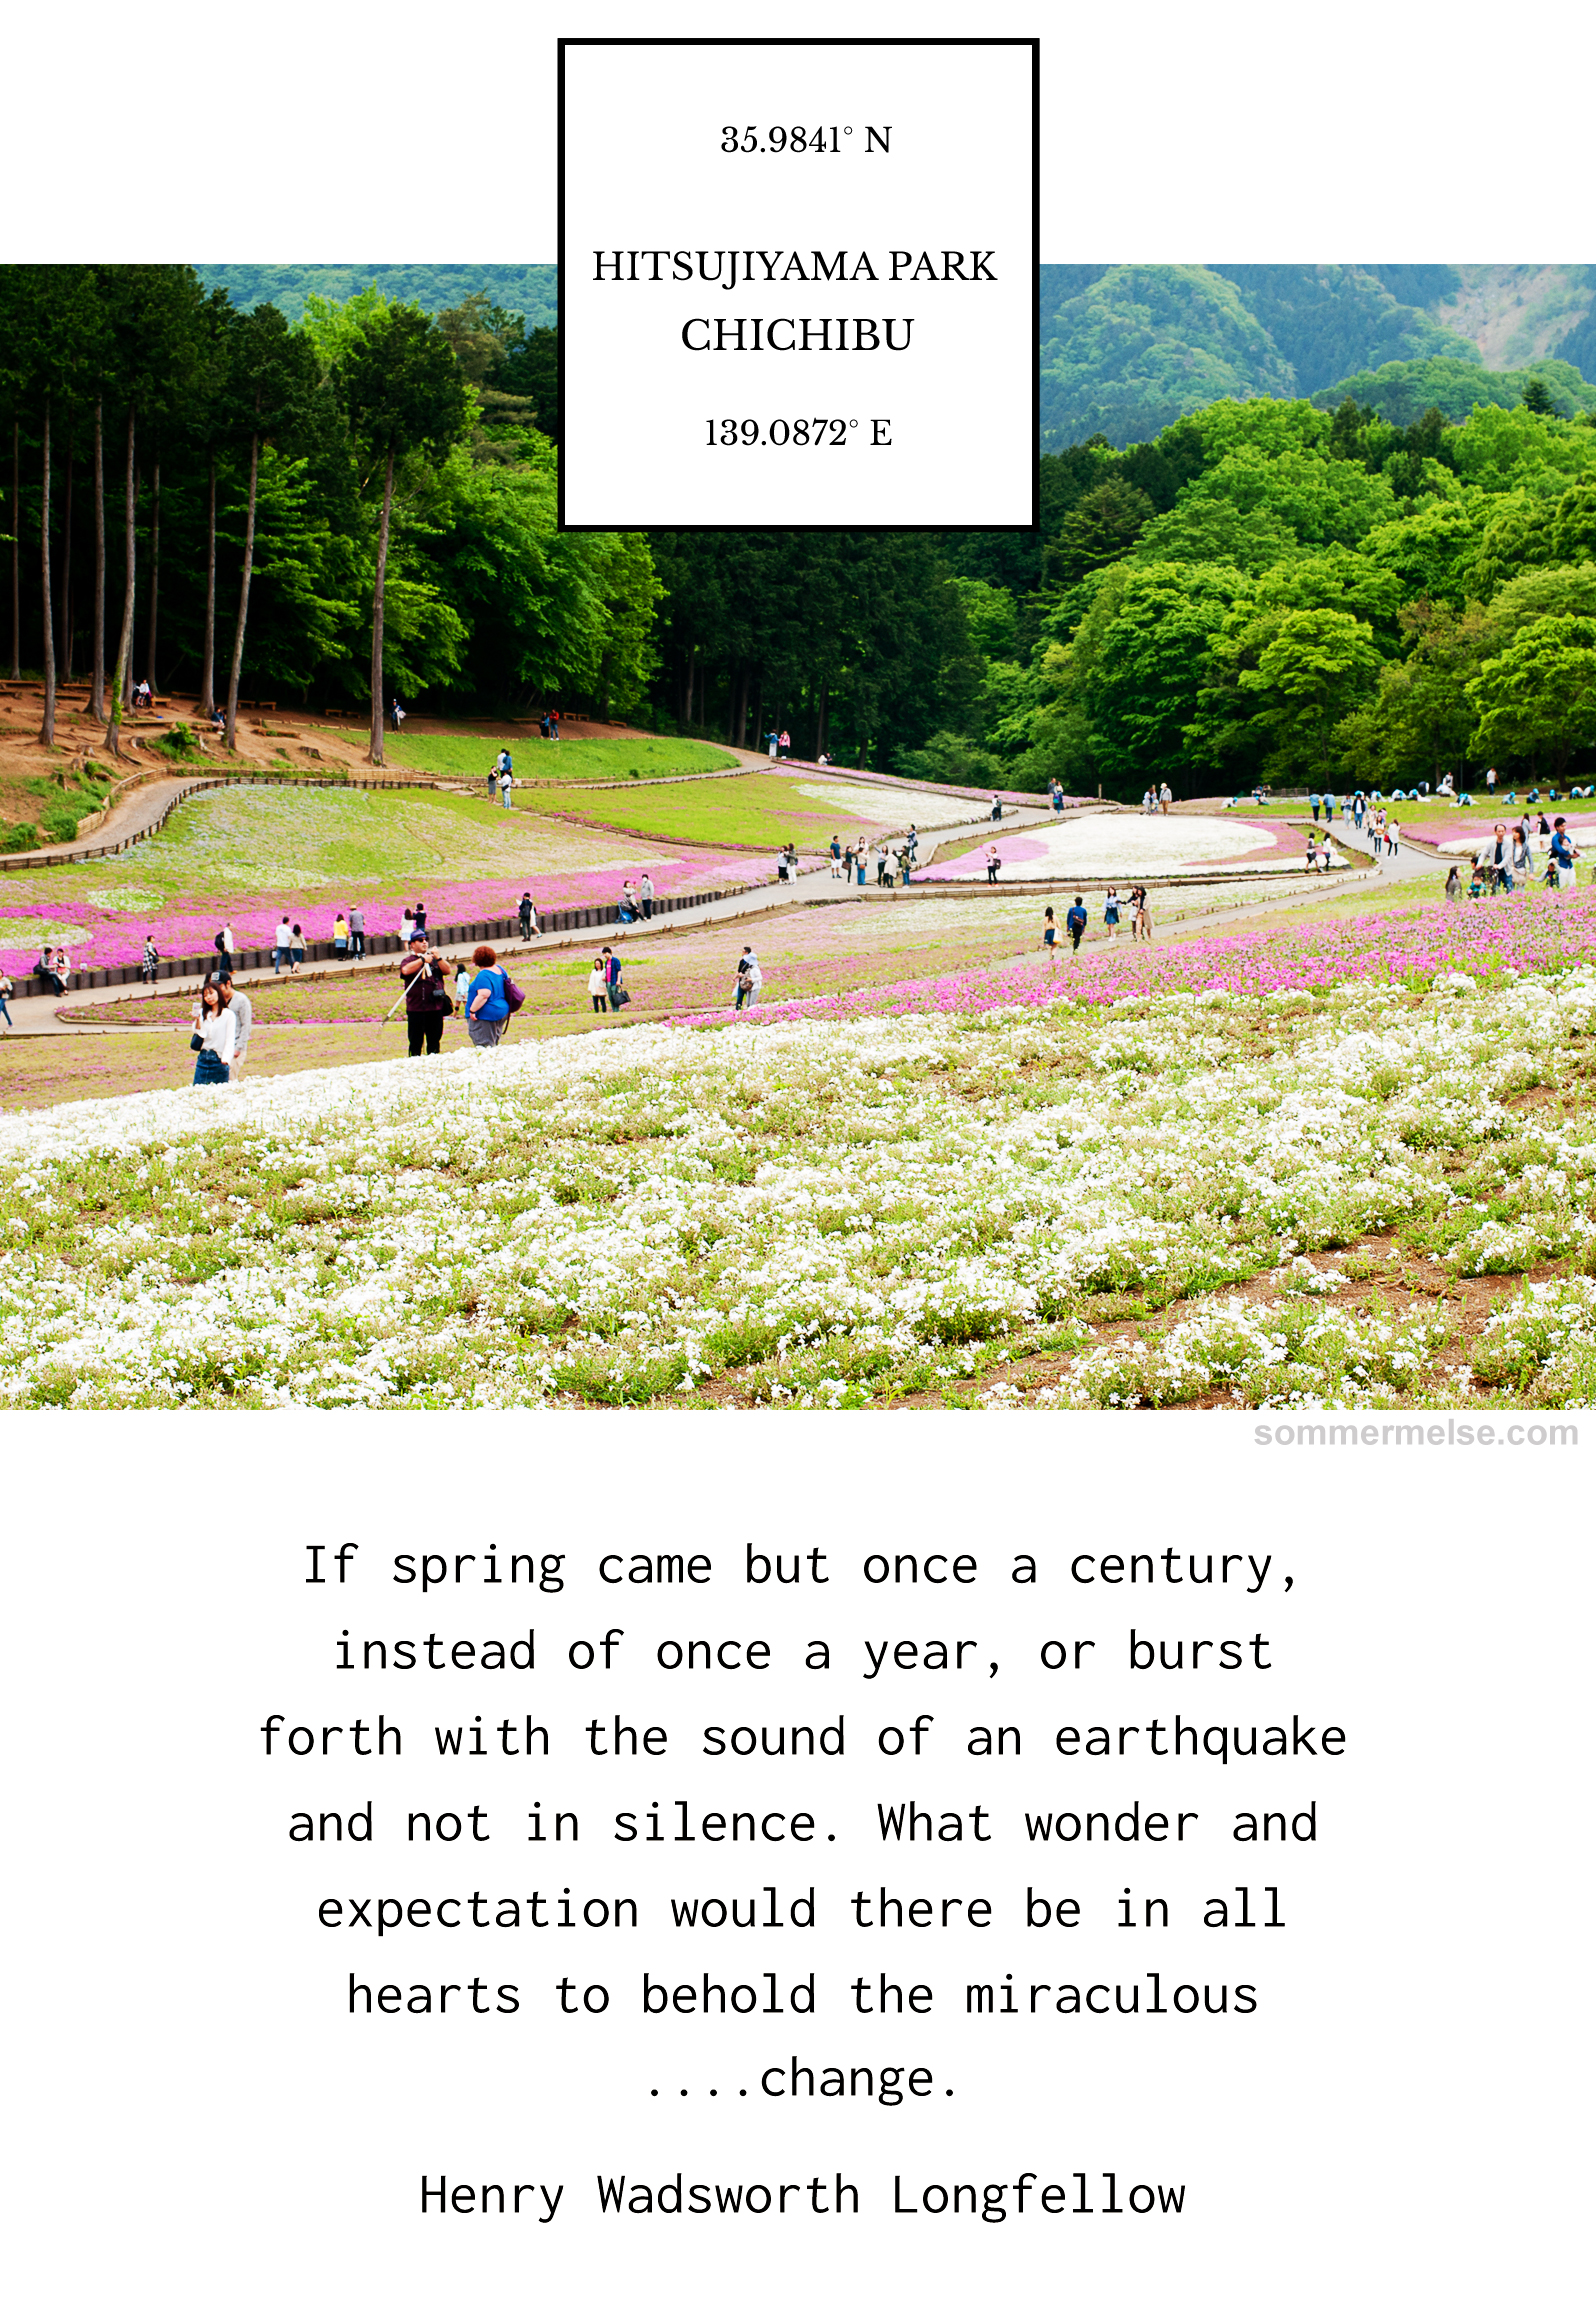 71_finding_wonder_spring_quote_henry_wadsworth_longfellow_hitsujiyama_japan